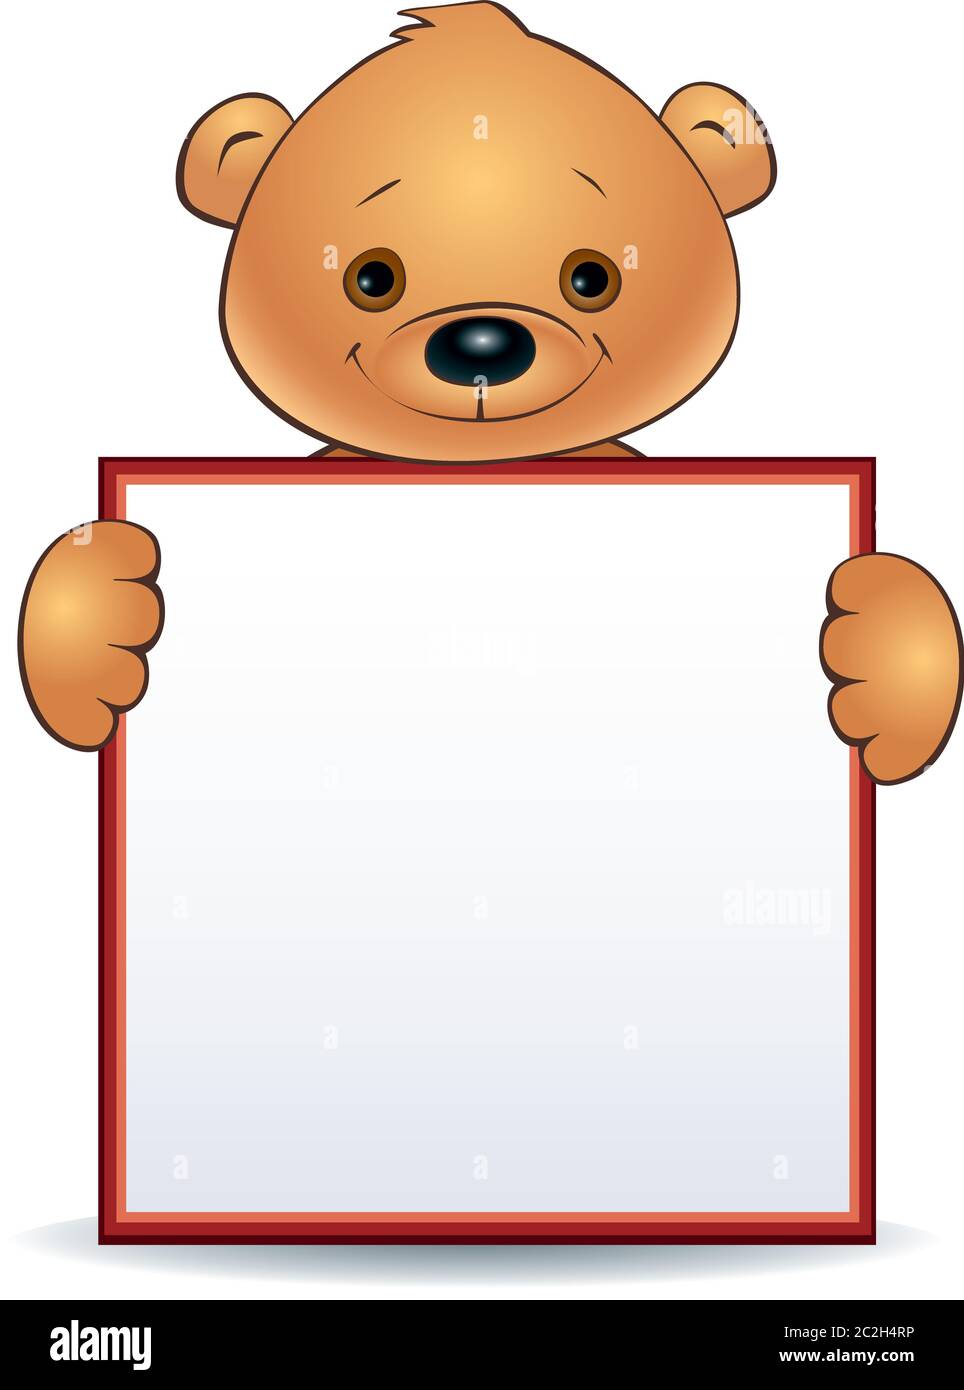 Brown Bear With A Barrel Of Honey On A White Background Stock Vector -  Illustration of sweet, vector: 136582575